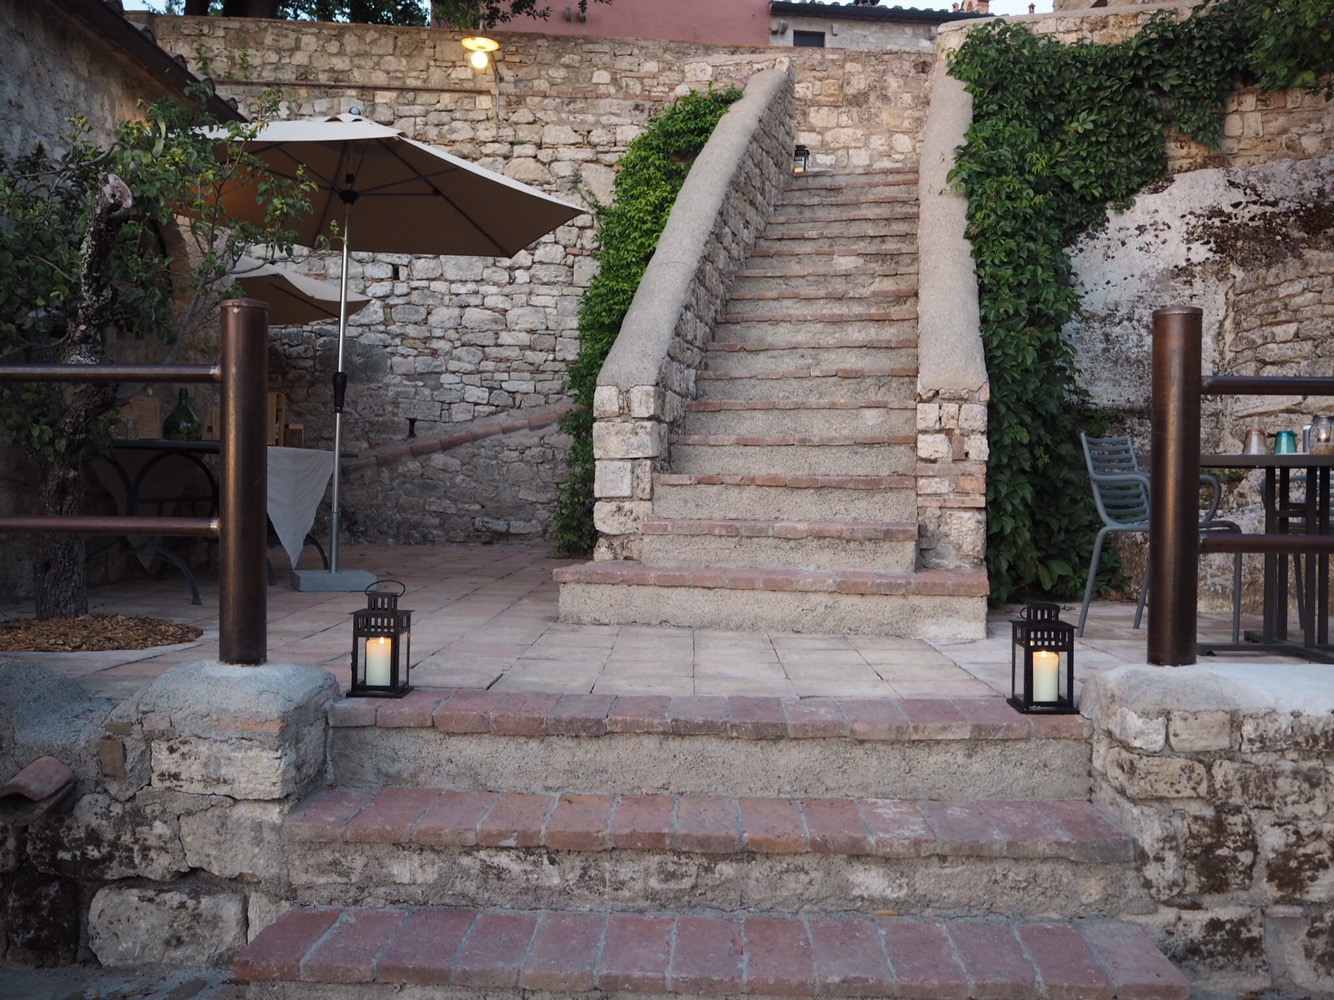 Stairs down to the Al Fresco restaurant